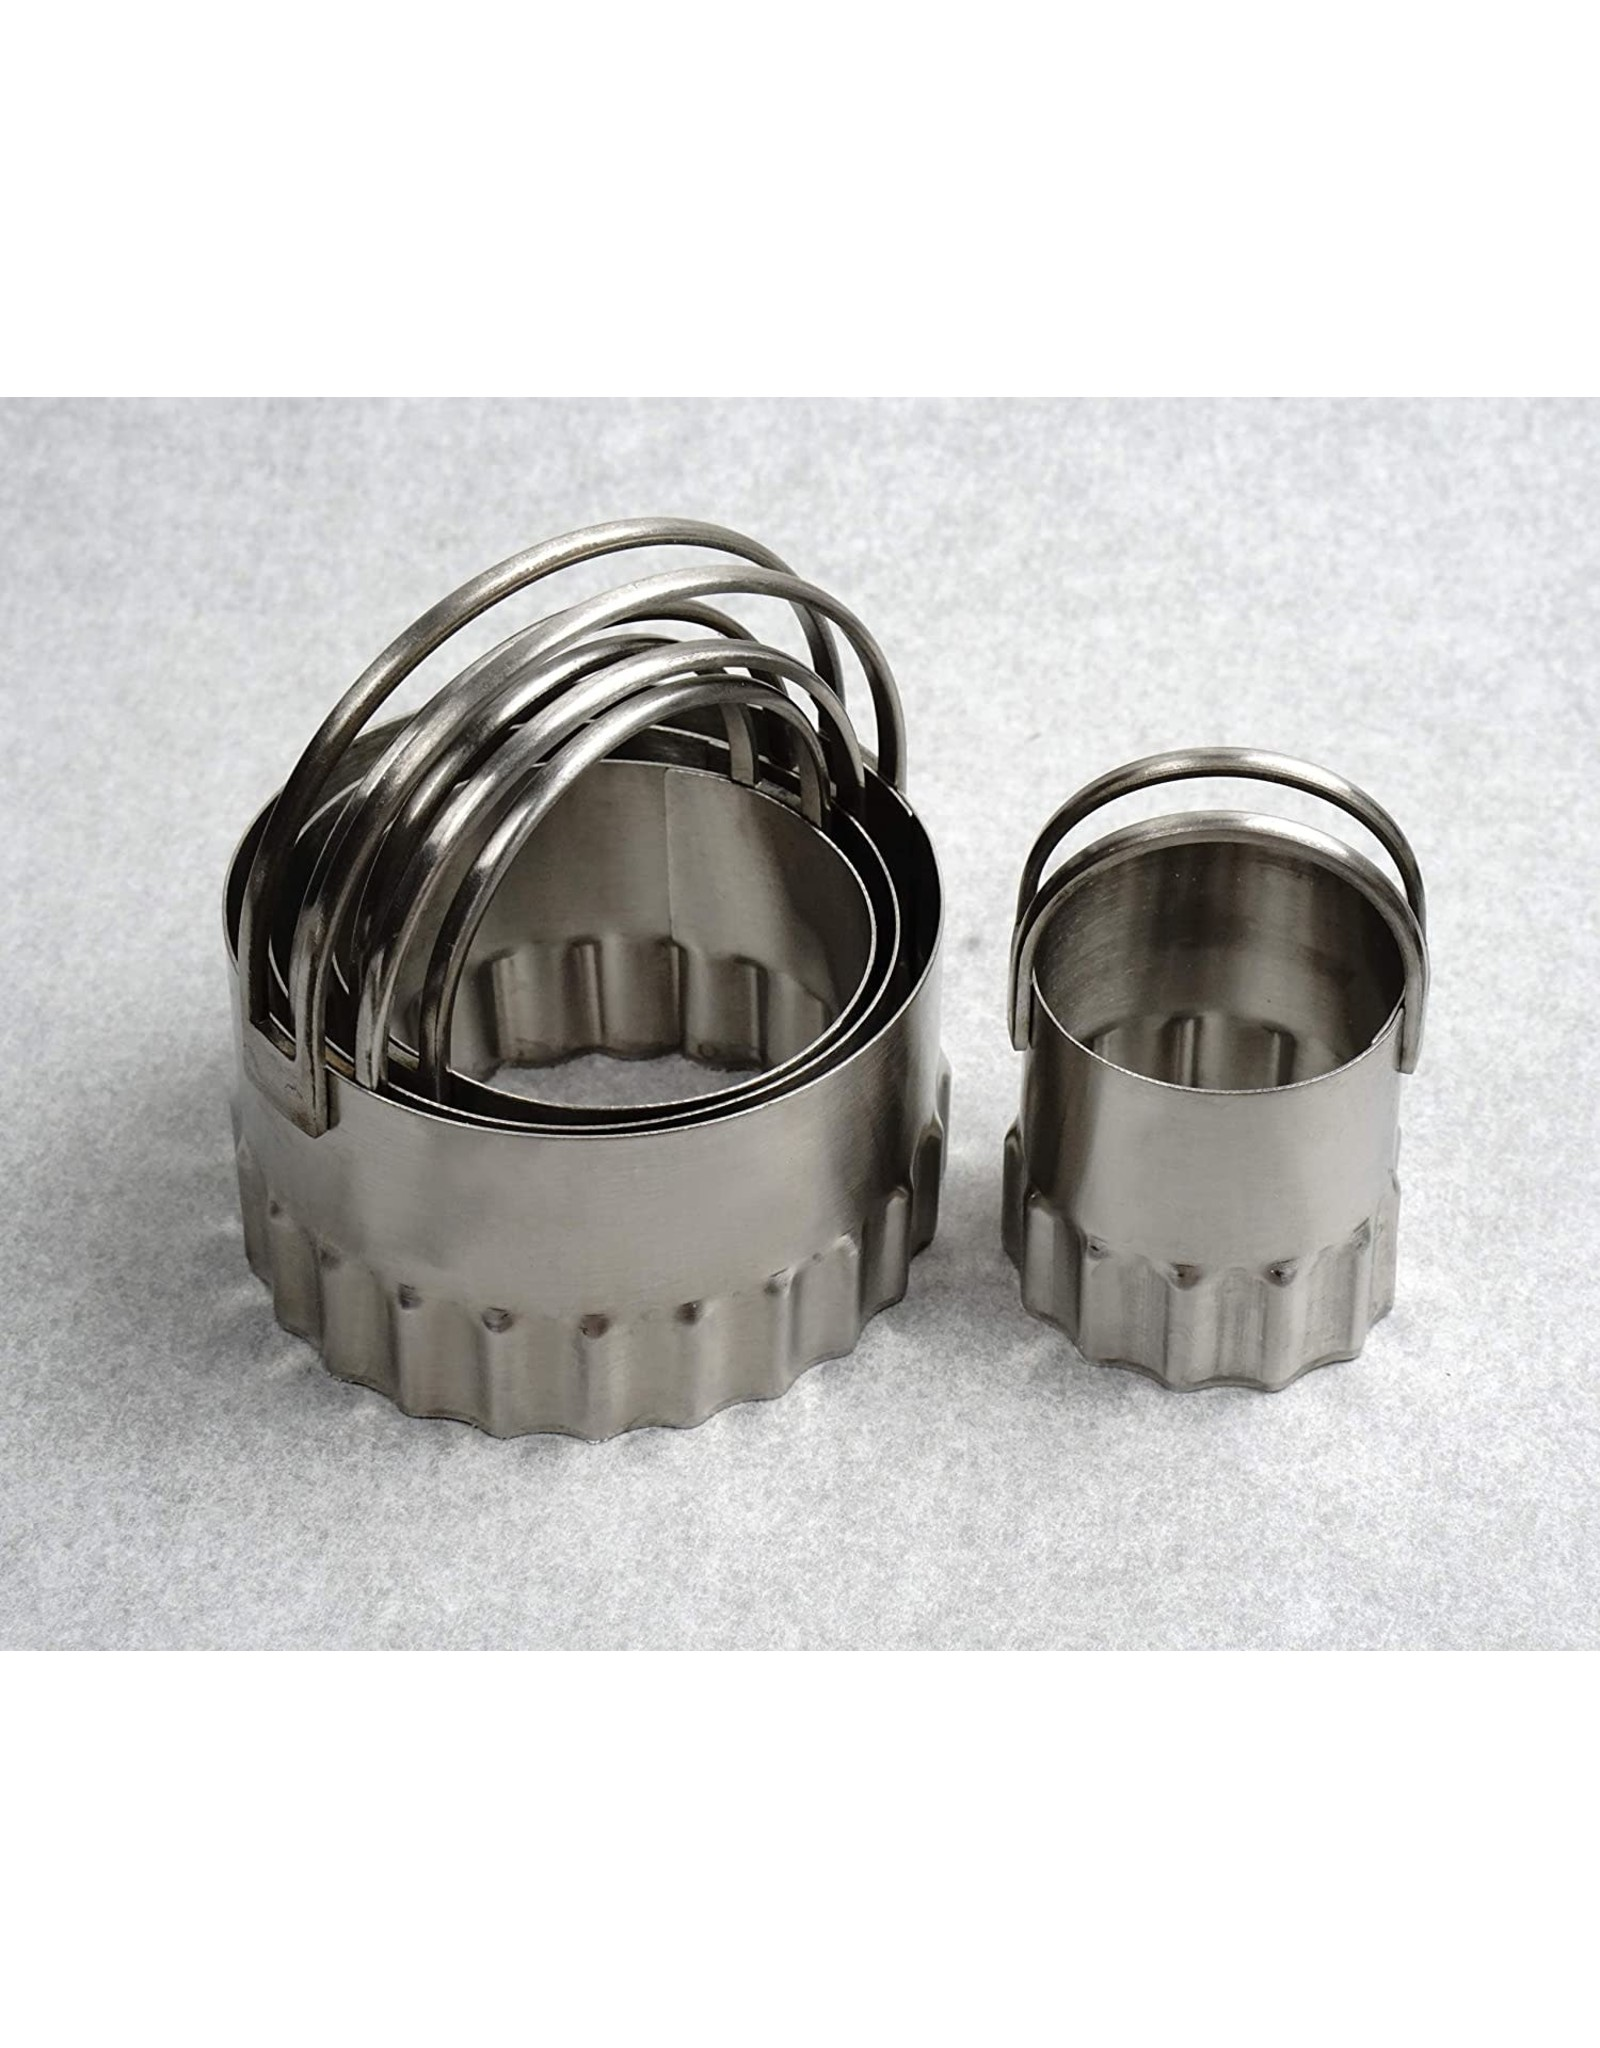 RSVP Biscuit cutters - Rippled